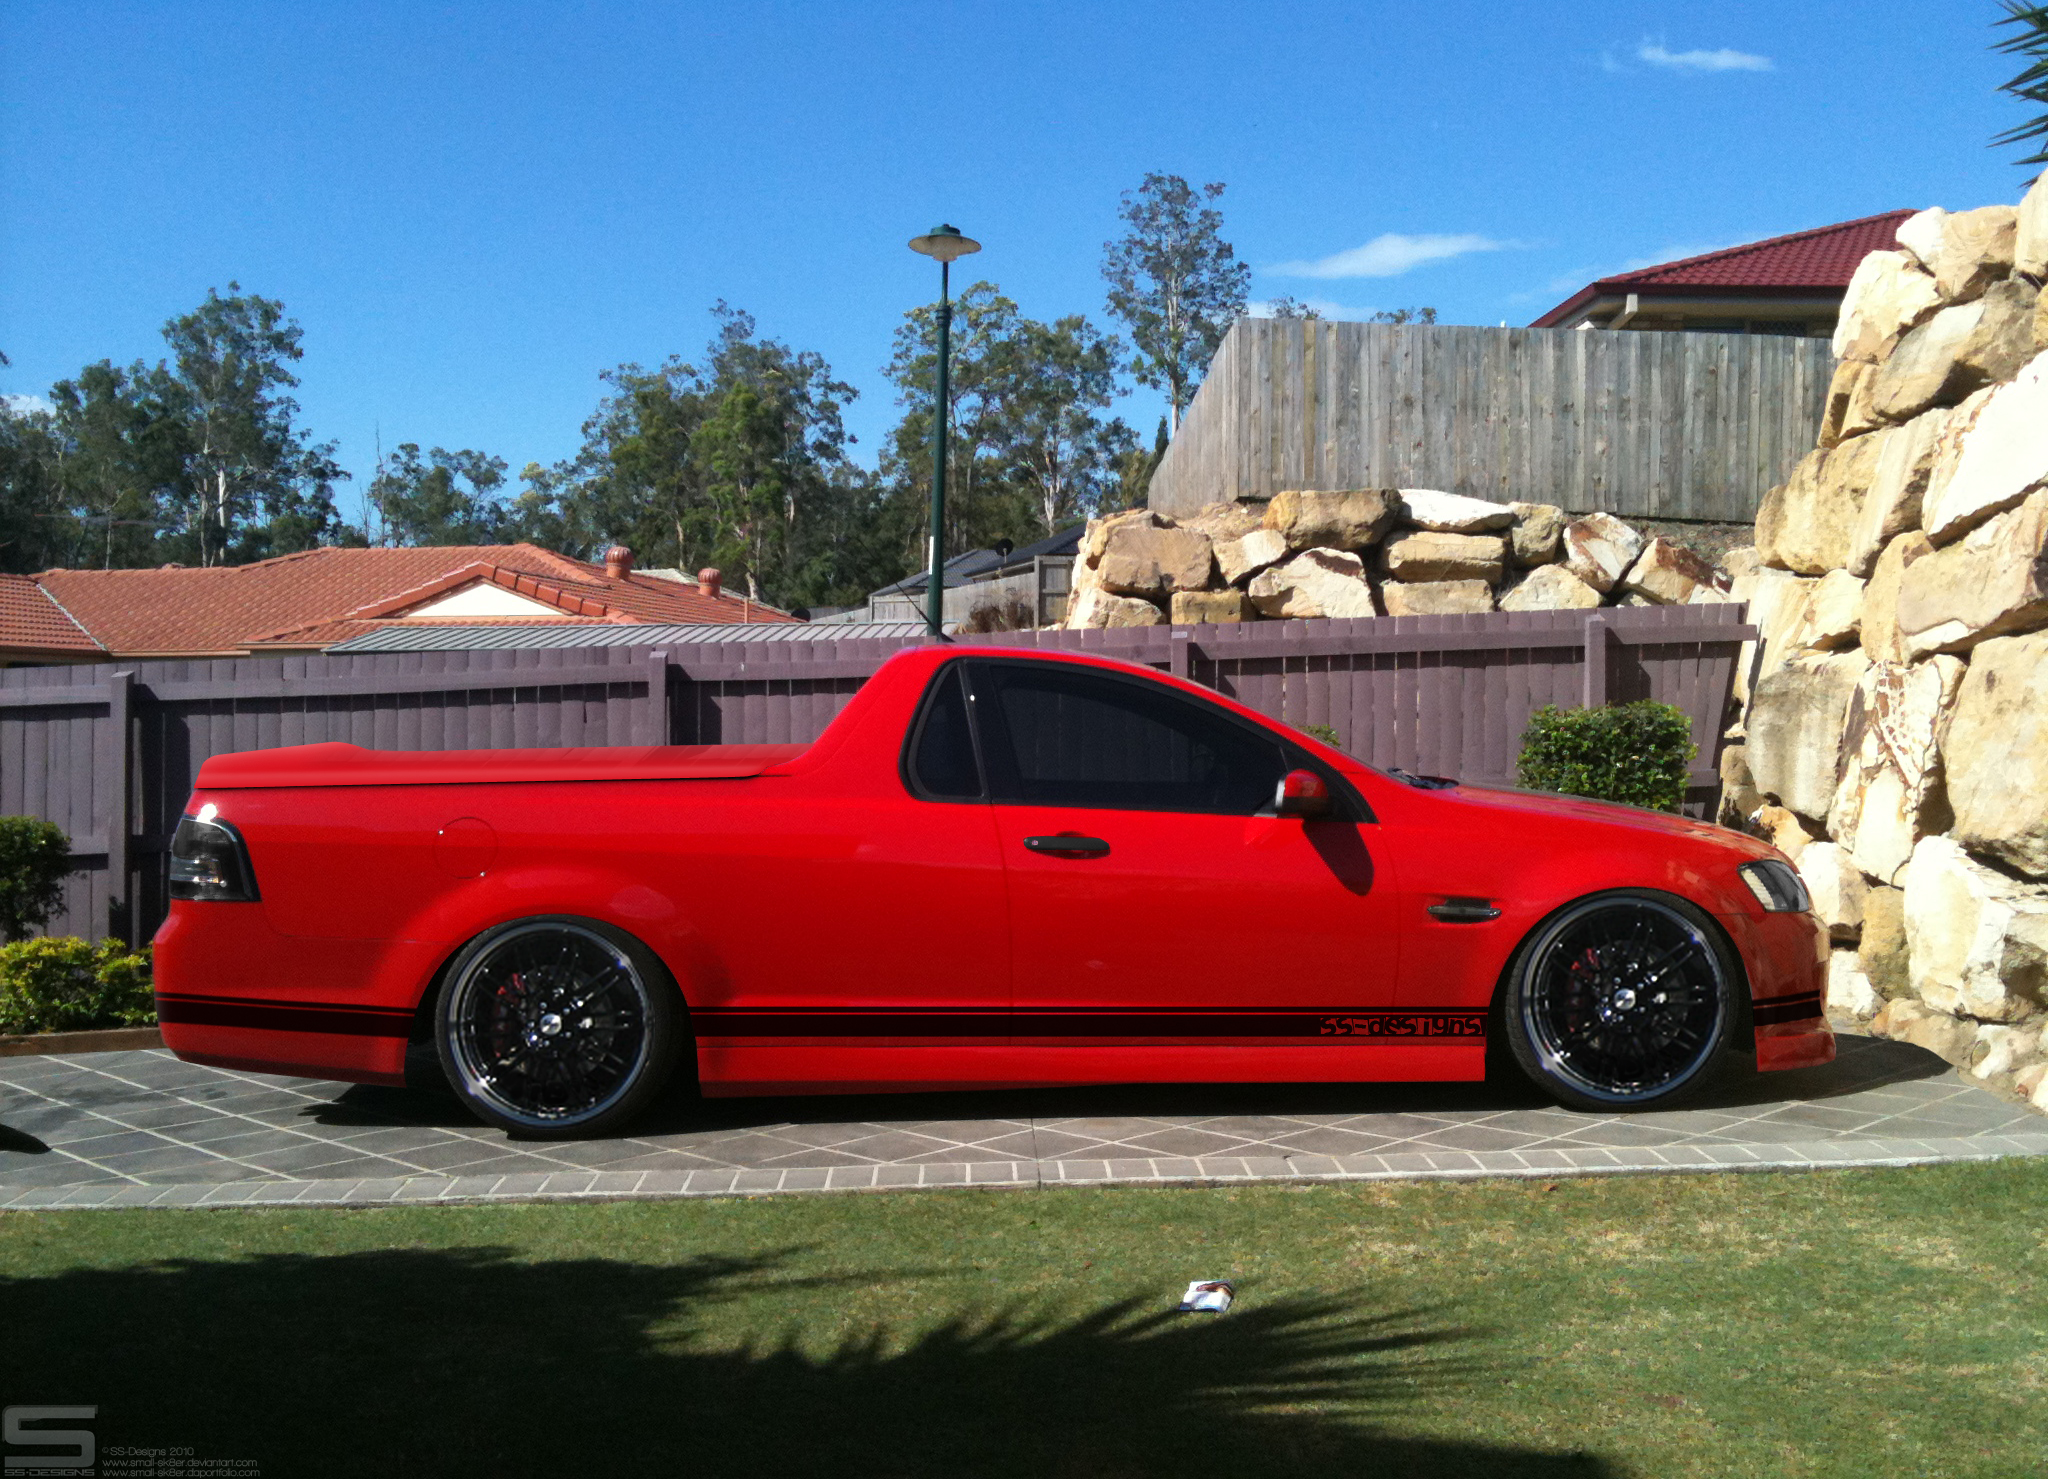 Holden_VE_Ute_Chop_v3_by_small_sk8er.jpg